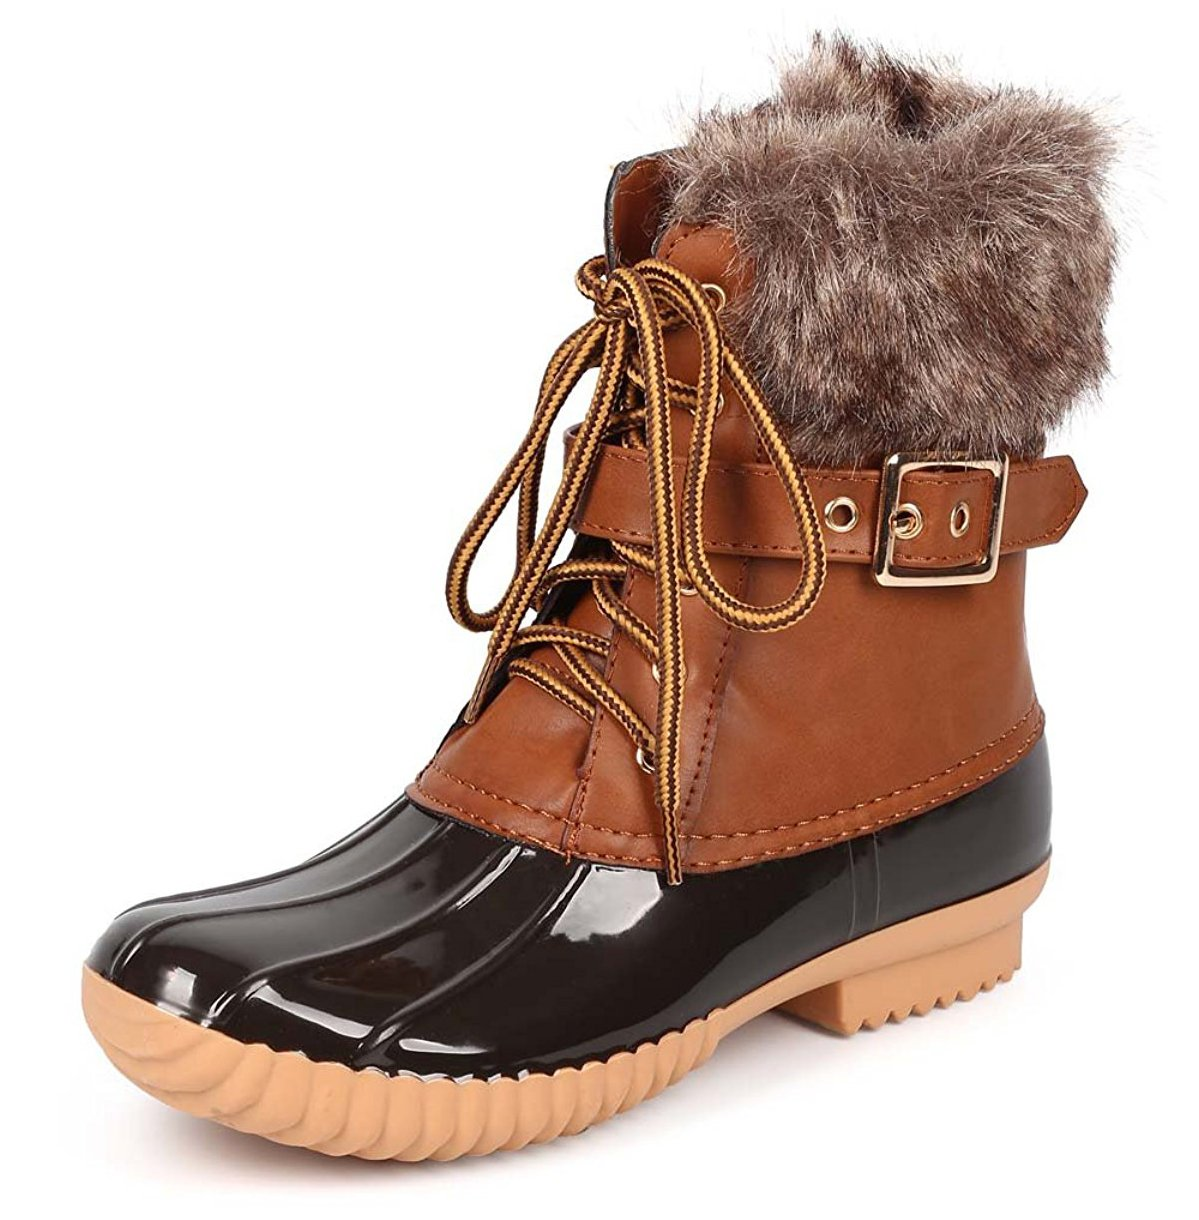 Nature Breeze Duck-01 Women's Chic Lace up Buckled Duck Waterproof Snow Boots B012C2TX06 6.5 B(M) US|Tan